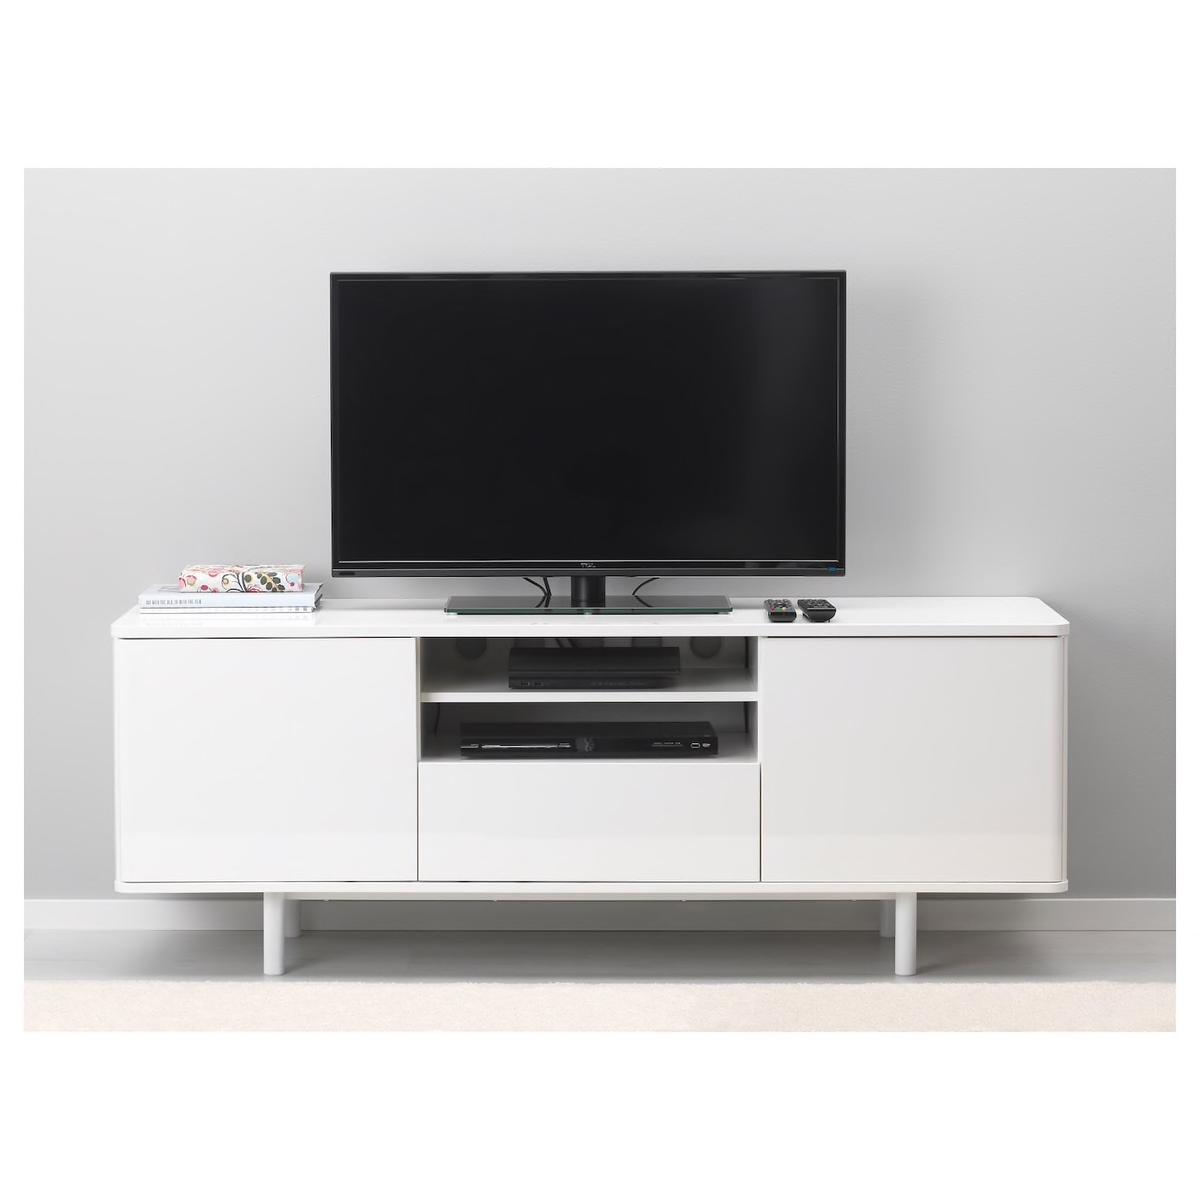 Fine Ikea Mostorp Tv Bench White High Gloss In Nw2 London Fur 150 Gmtry Best Dining Table And Chair Ideas Images Gmtryco